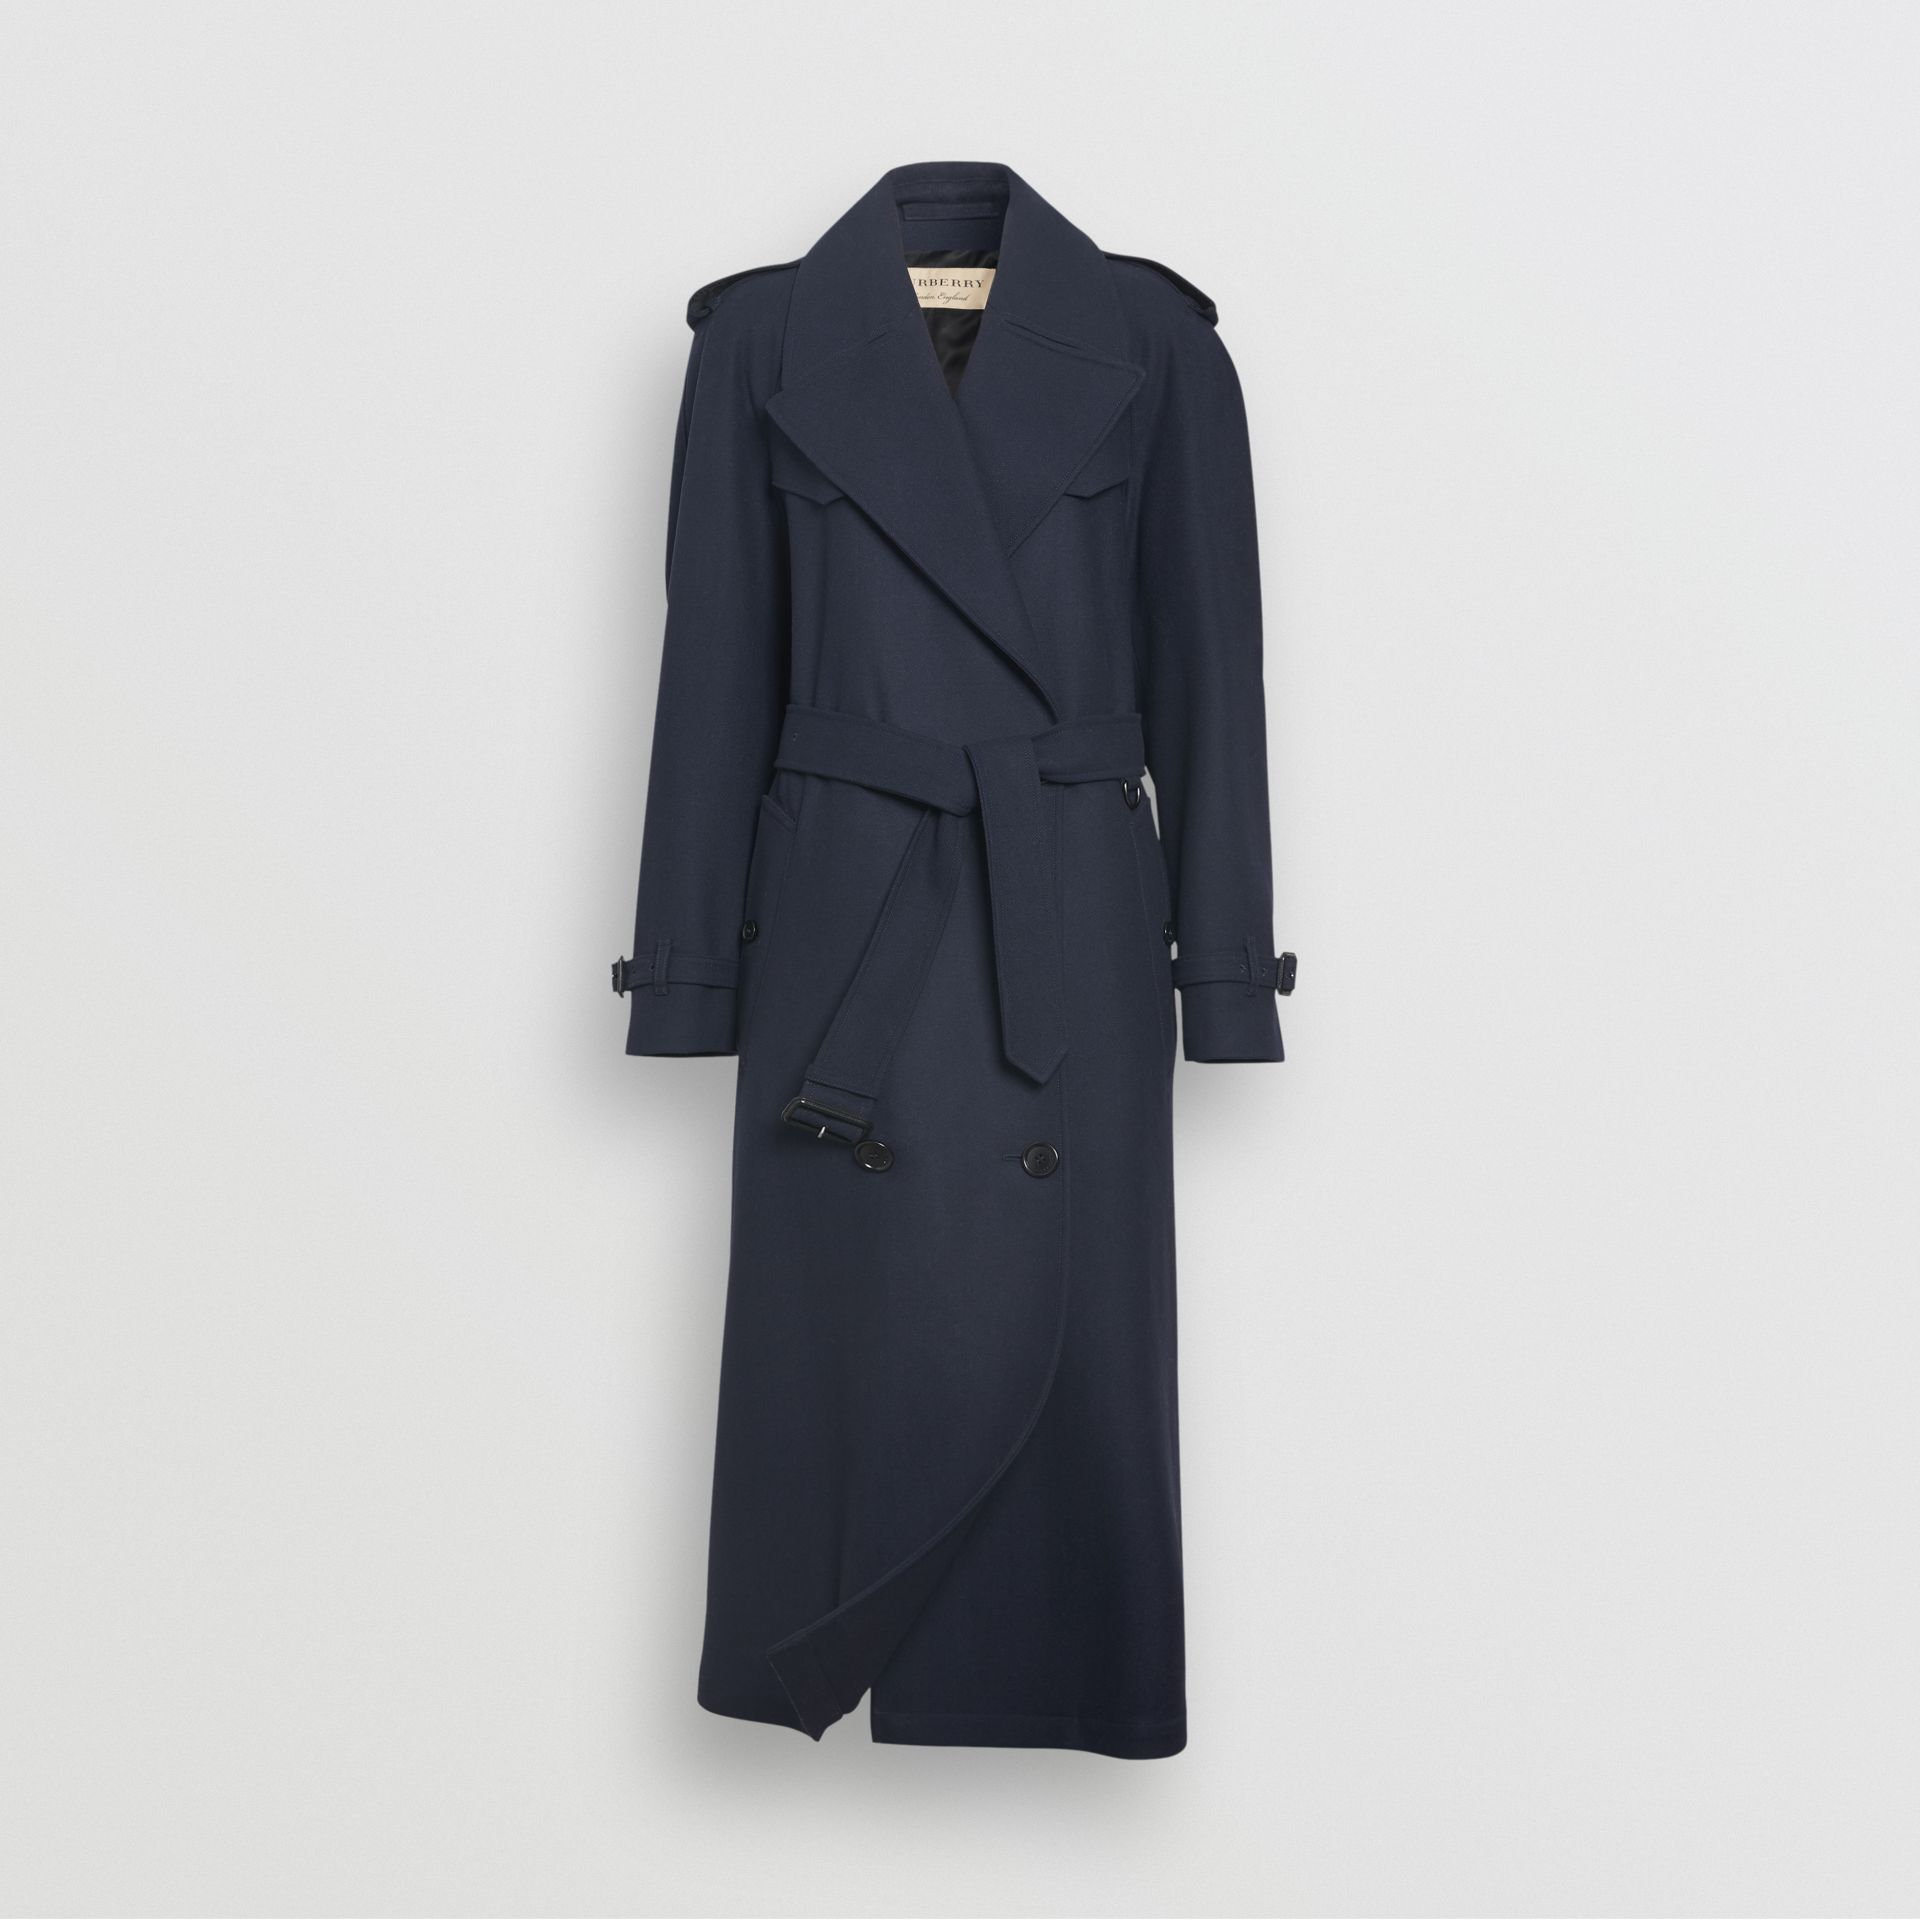 Herringbone Wool Blend Trench Coat in Navy - Women | Burberry Hong Kong - gallery image 3